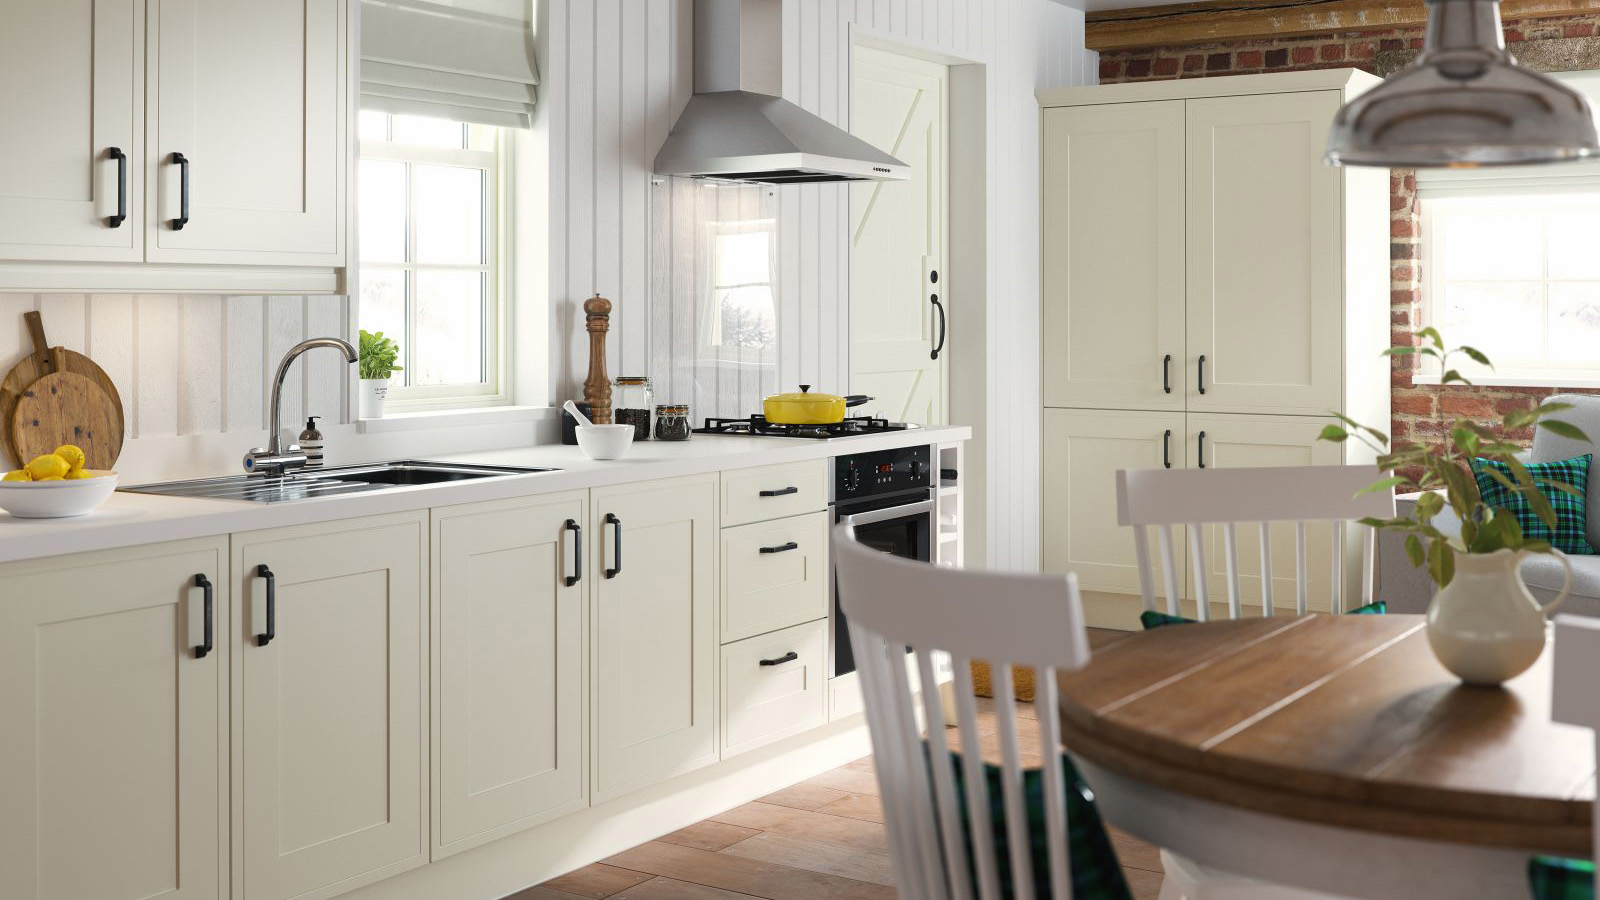 Best Kitchen Design Software 2019 Reviews For Mac And Pc